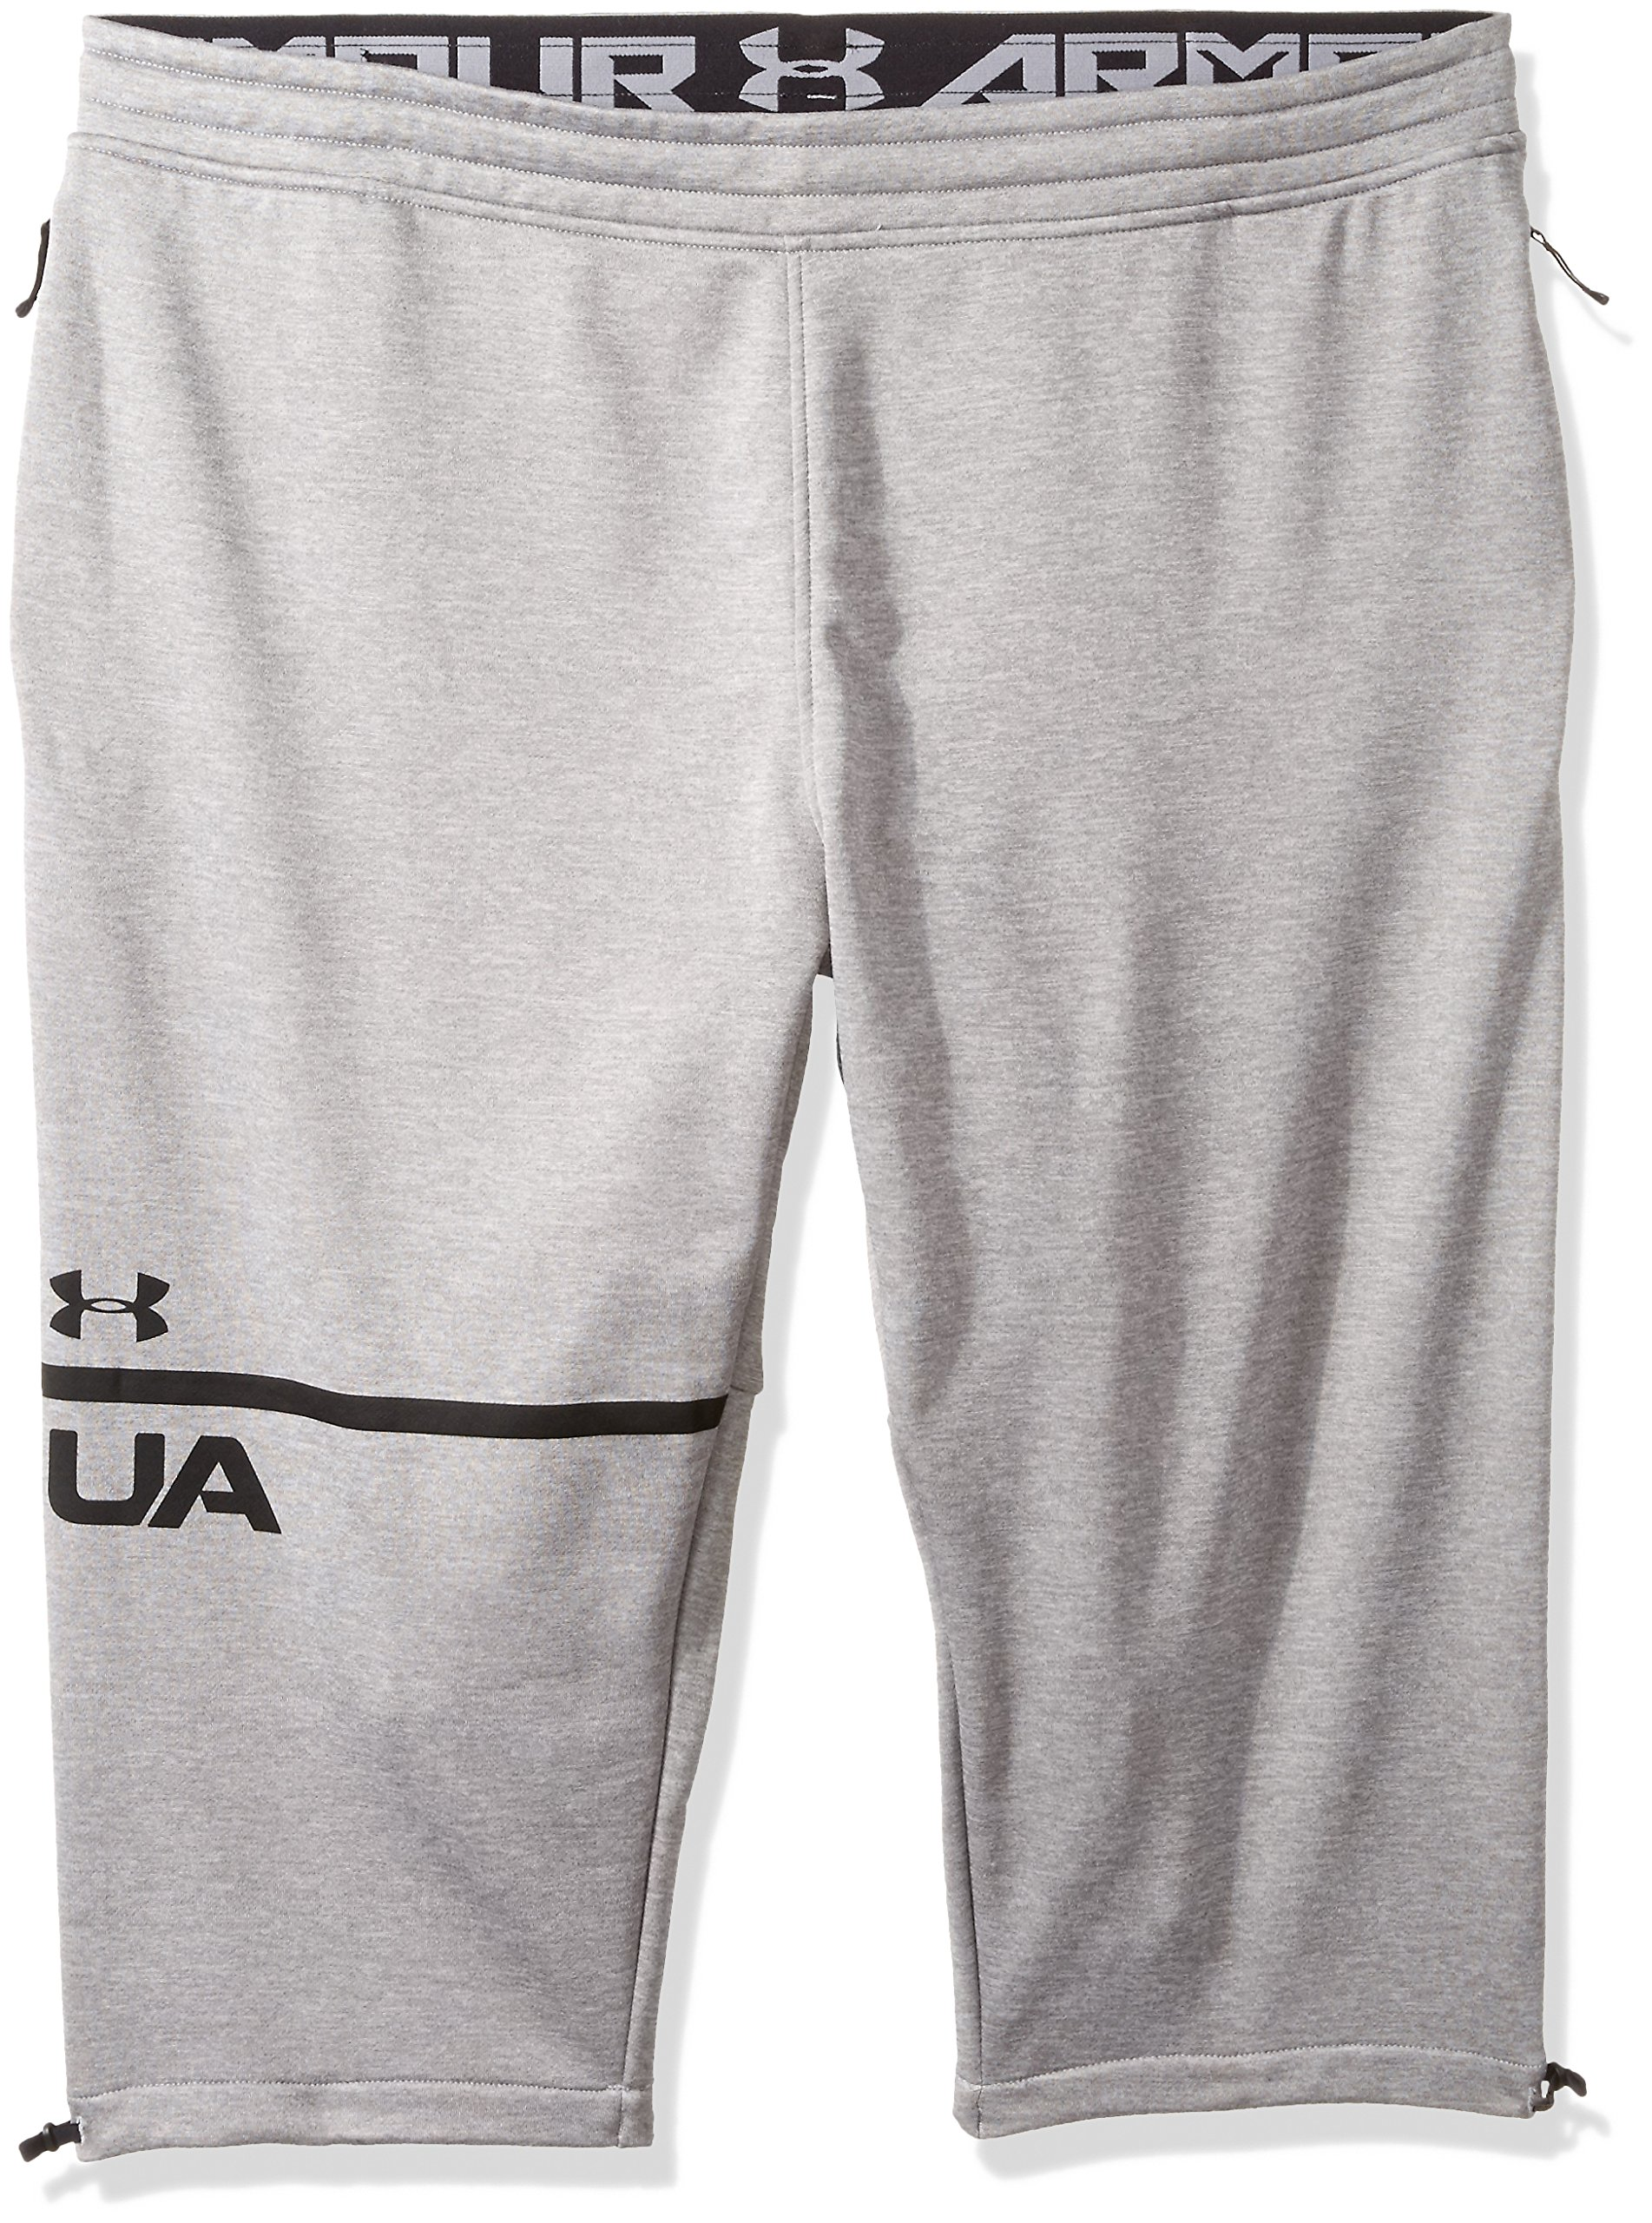 Under Armour Men's MK-1 Terry 3/4 Pants, Steel (035)/Black, Small